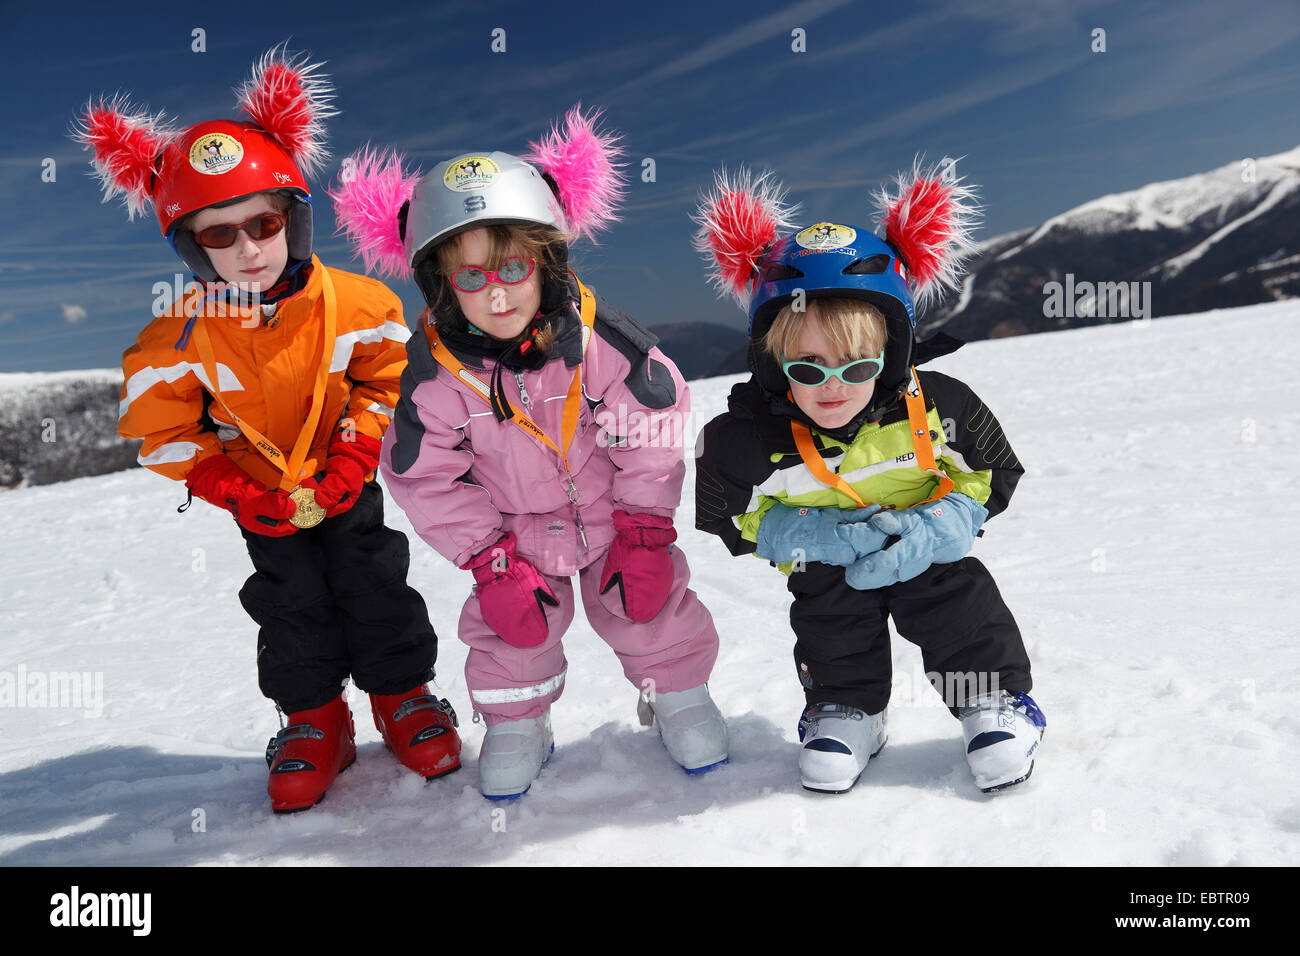 three children with medals of ski race, Austria, Kaernten - Stock Image